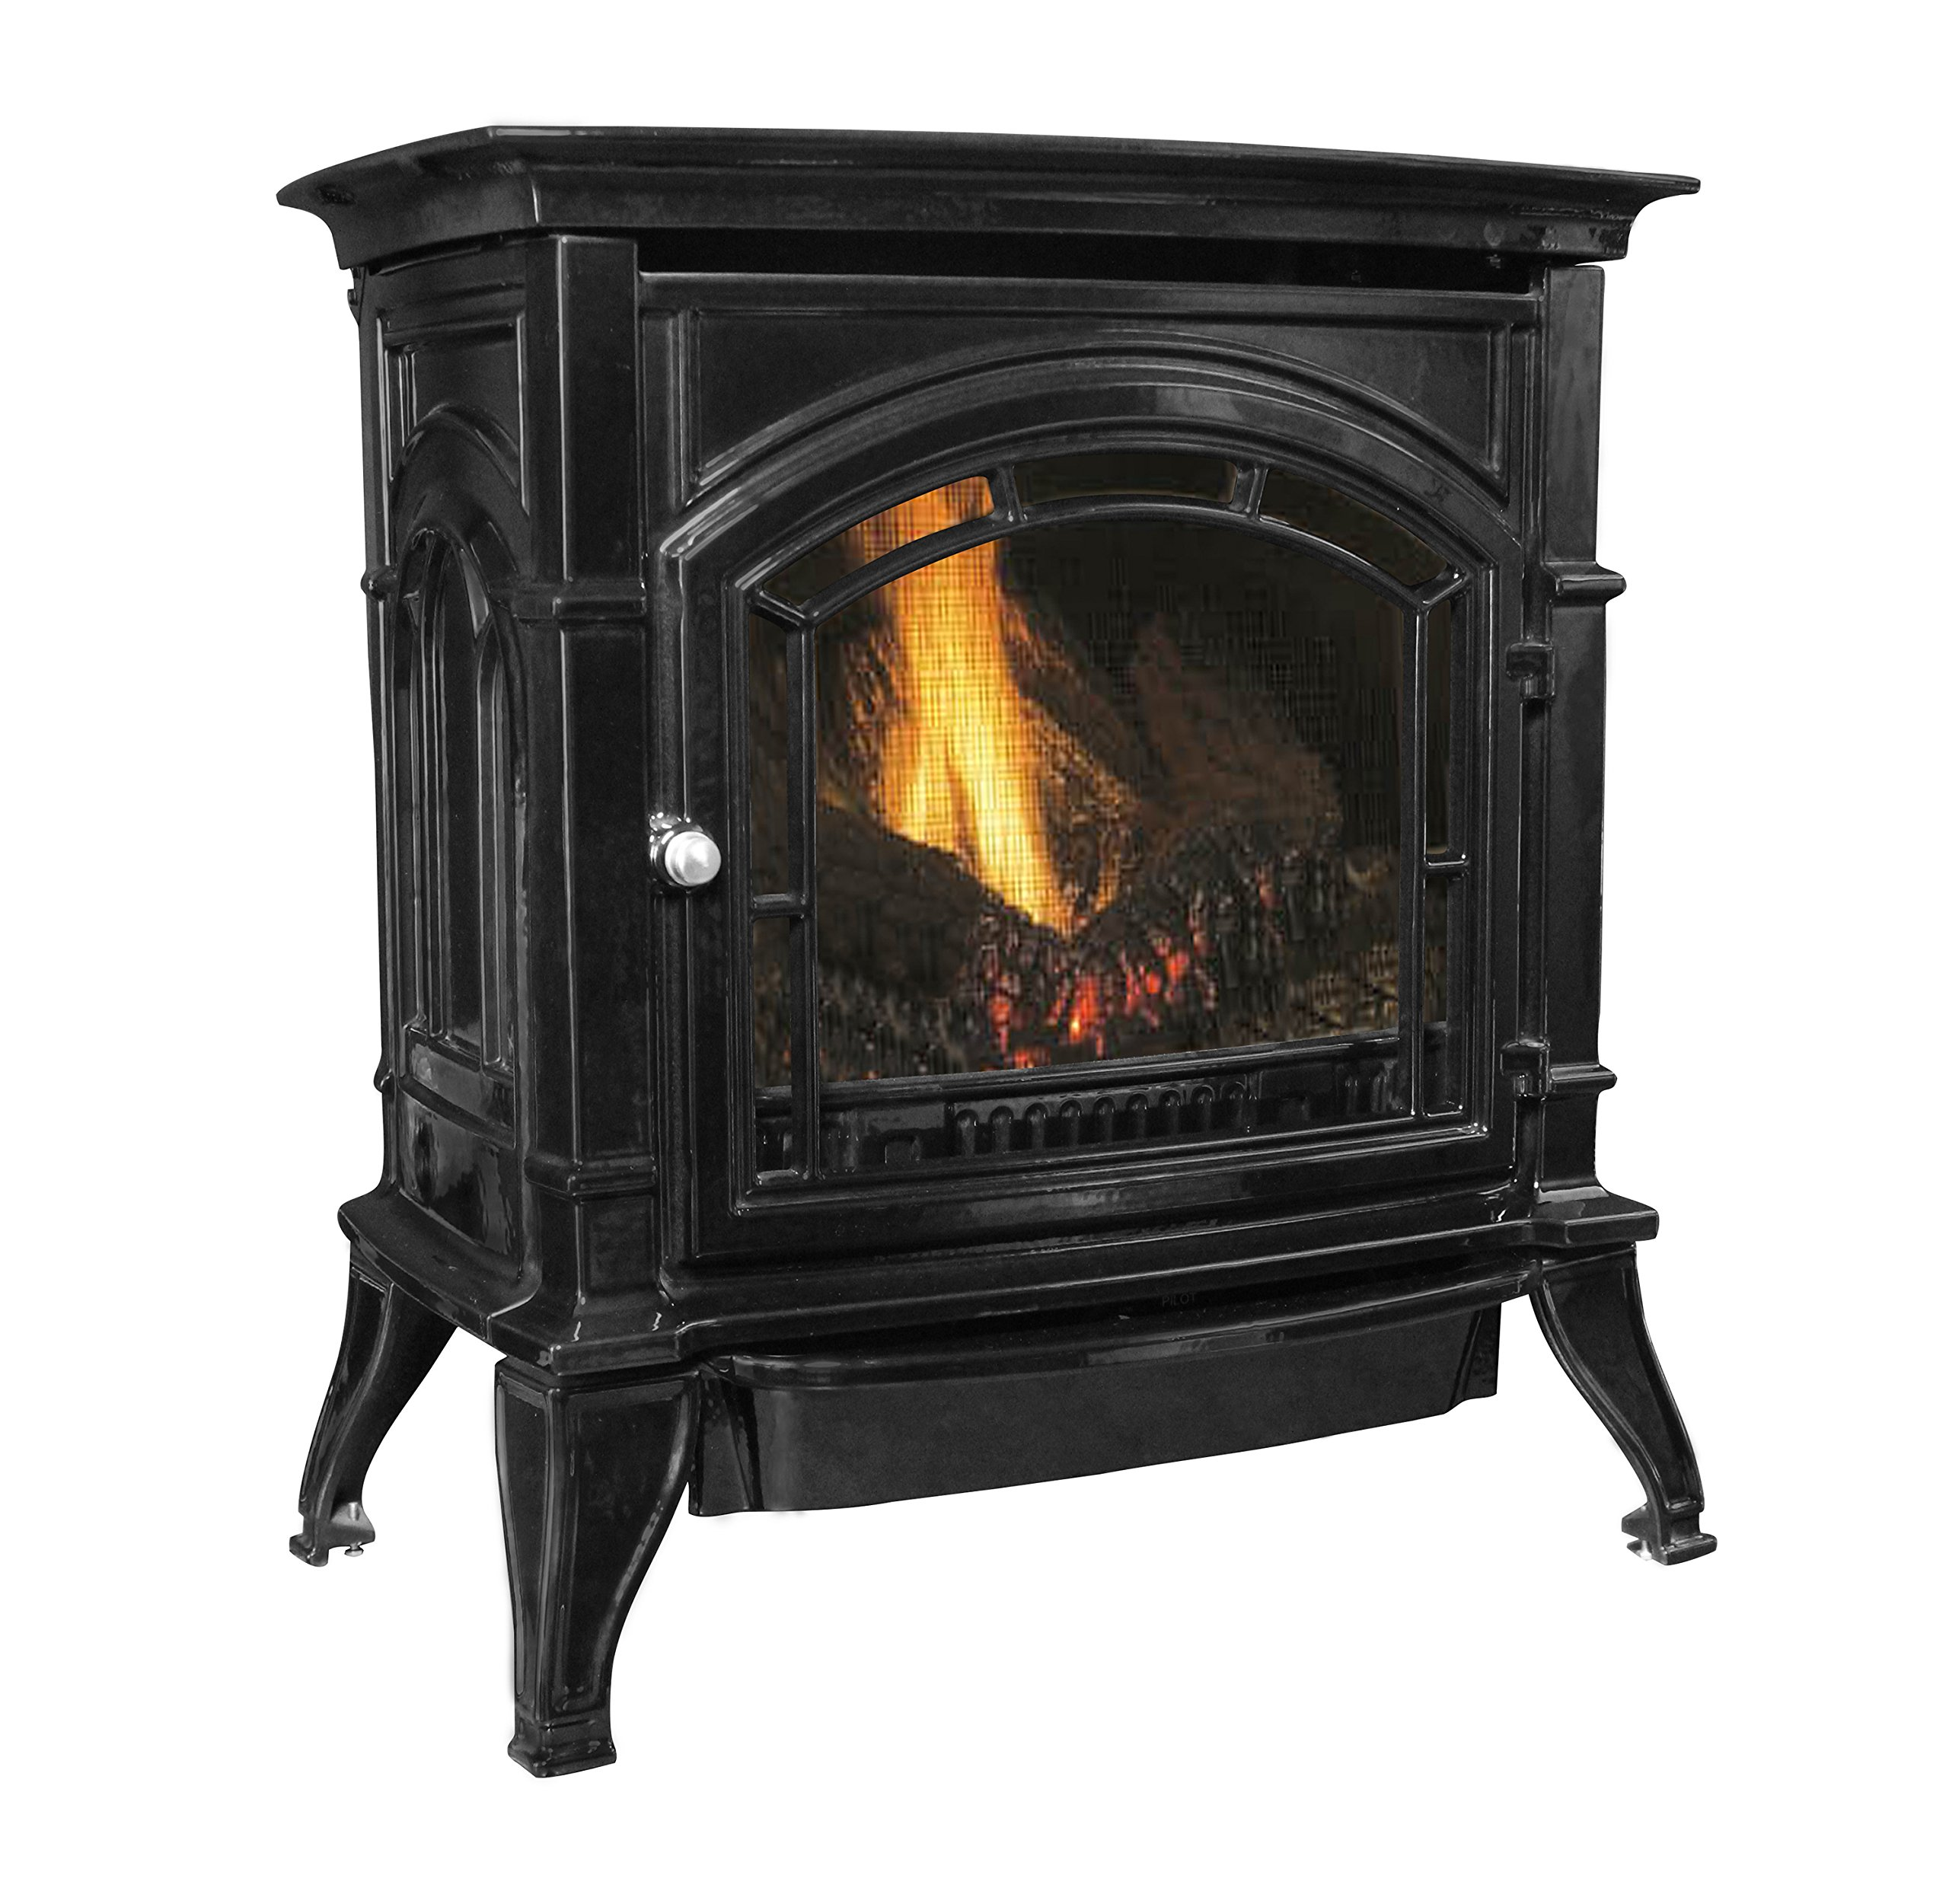 Ashley AGC500VFBN Vent-Free Black Enameled Porcelain Cast Iron Stove, 31,000 BTUs (Natural Gas) by Ashley